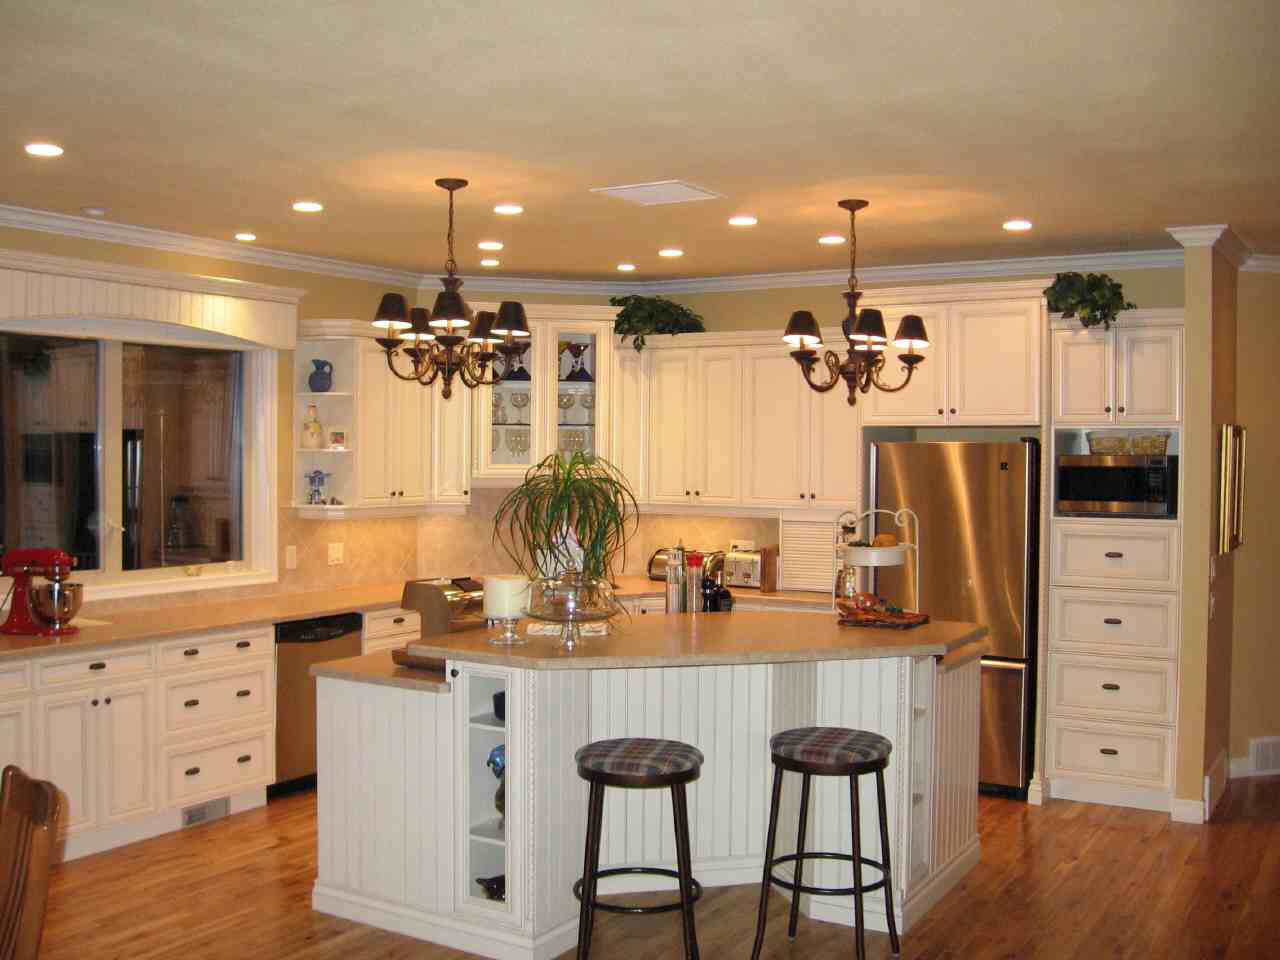 Pictures for kitchen wall photo - 3